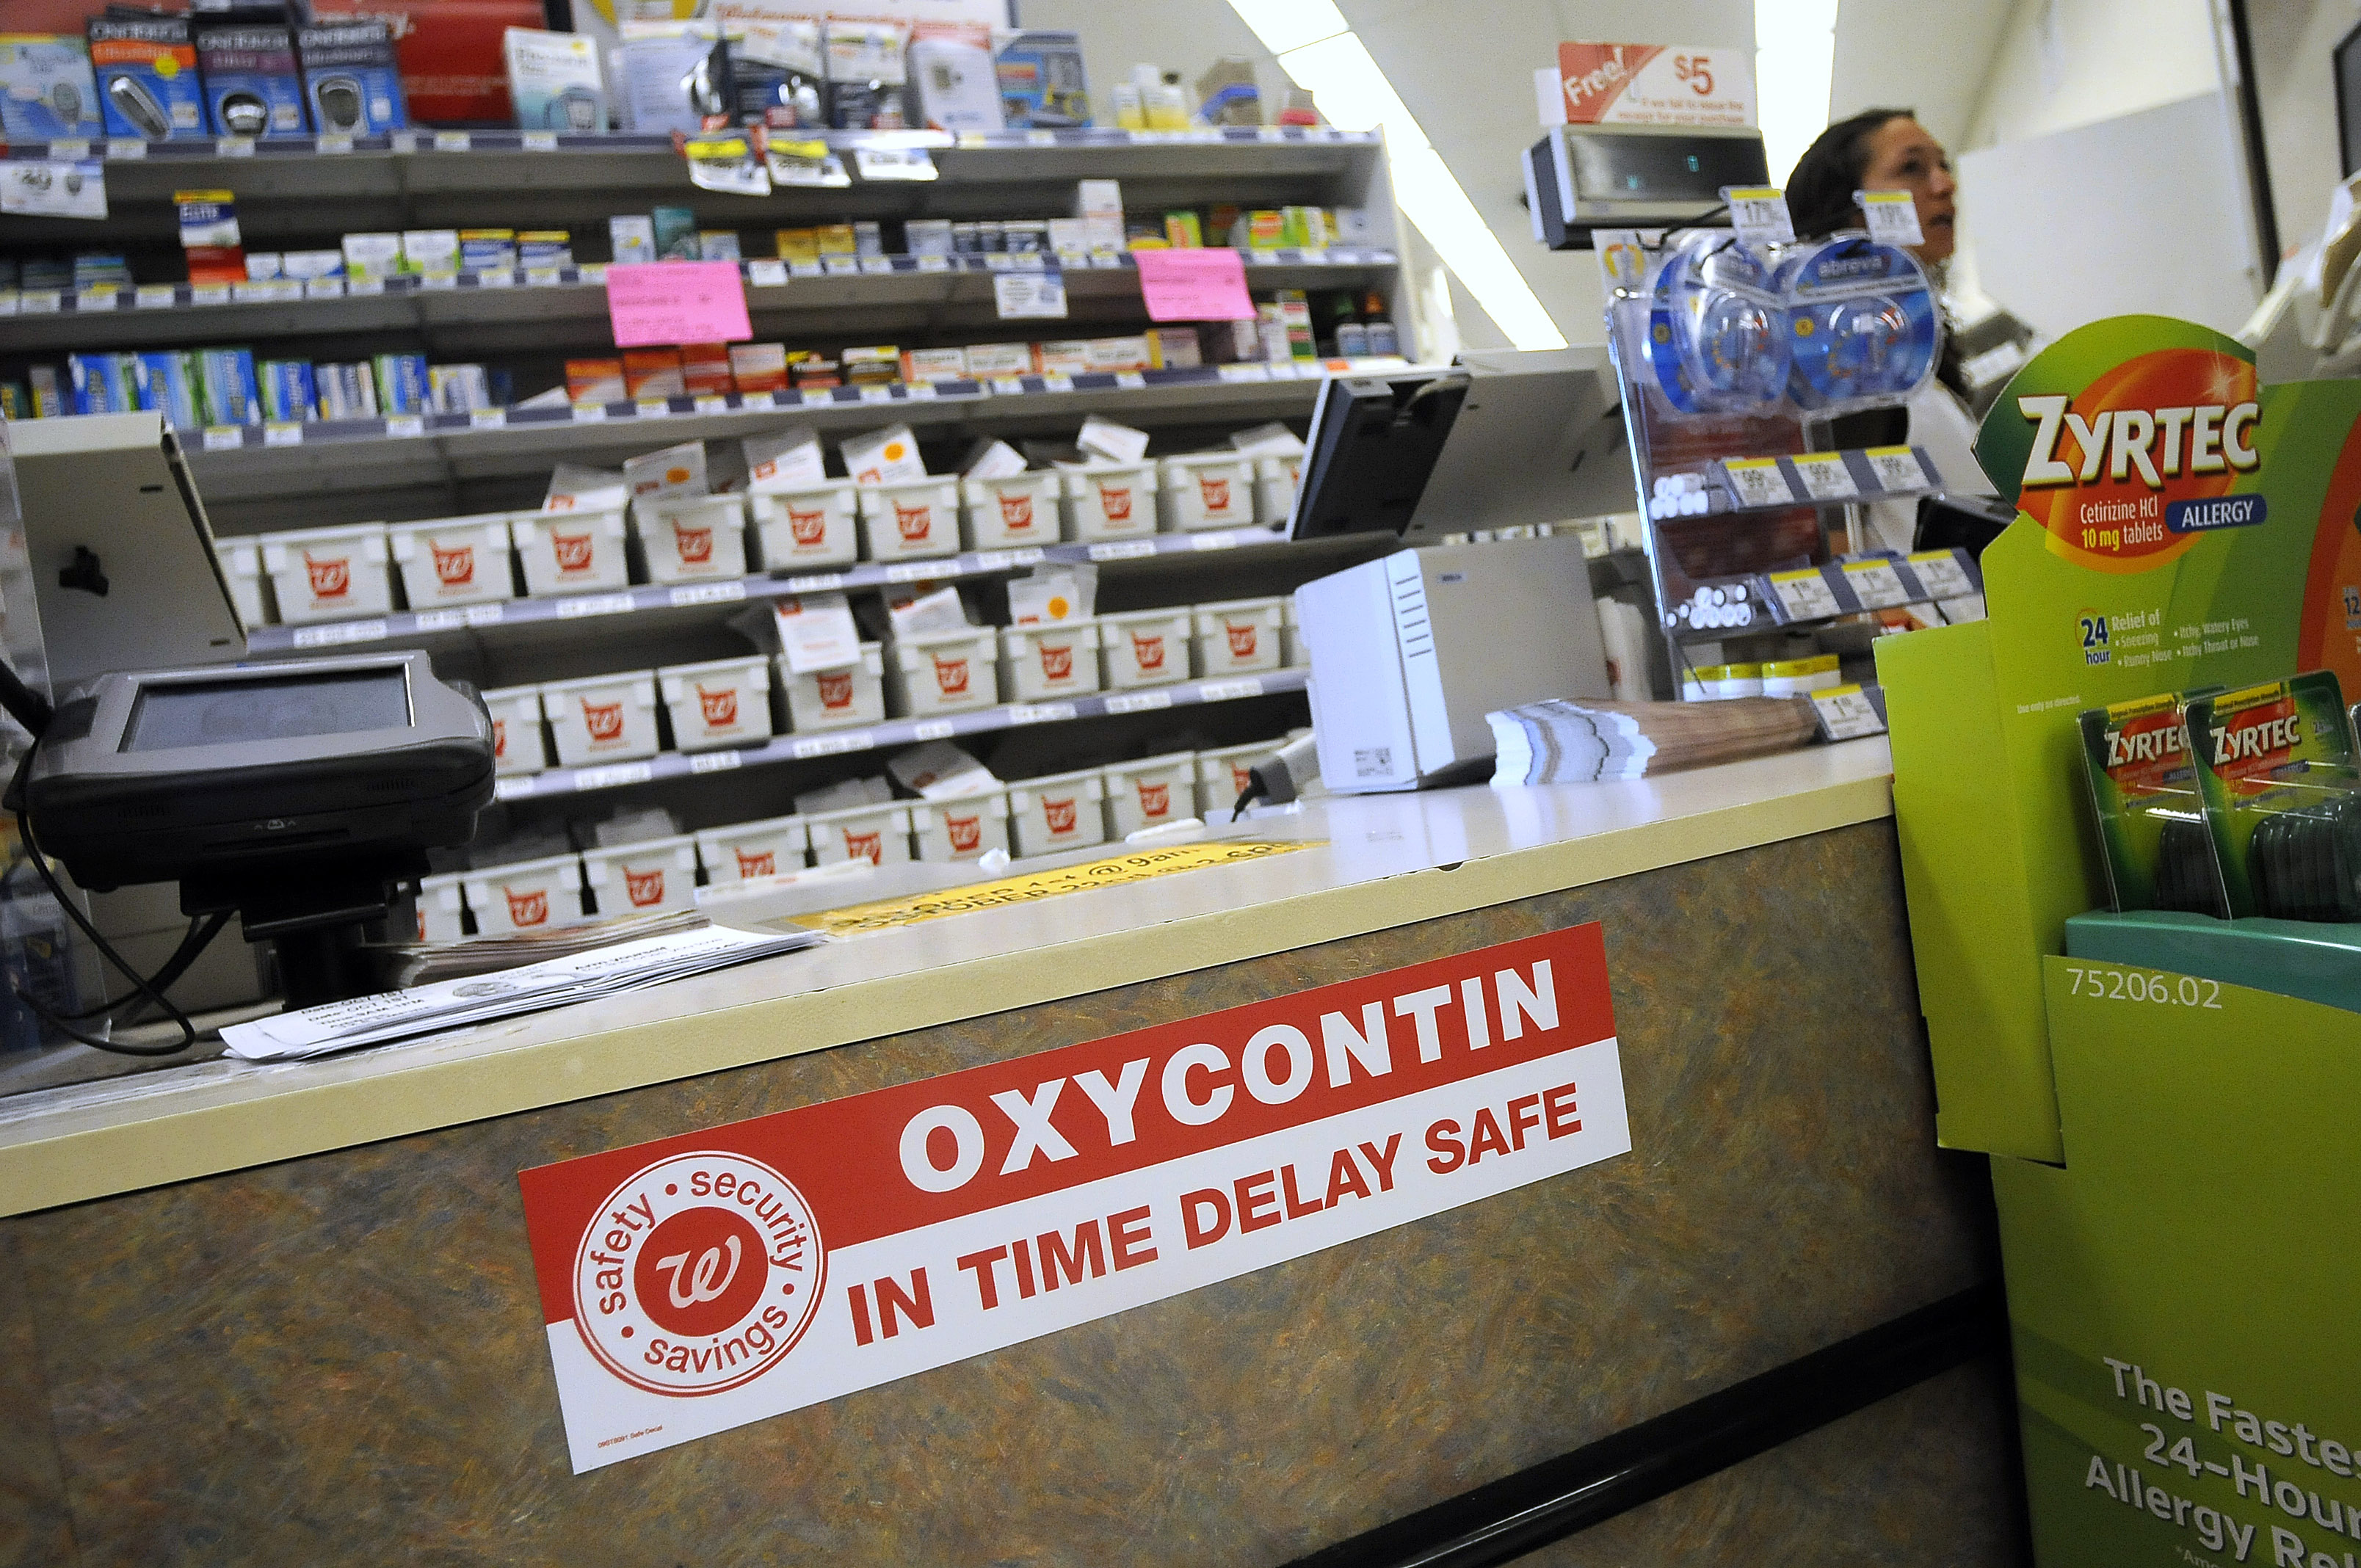 walgreens hopes special safes suppress oxycontin robberies the walgreens hopes special safes suppress oxycontin robberies the review